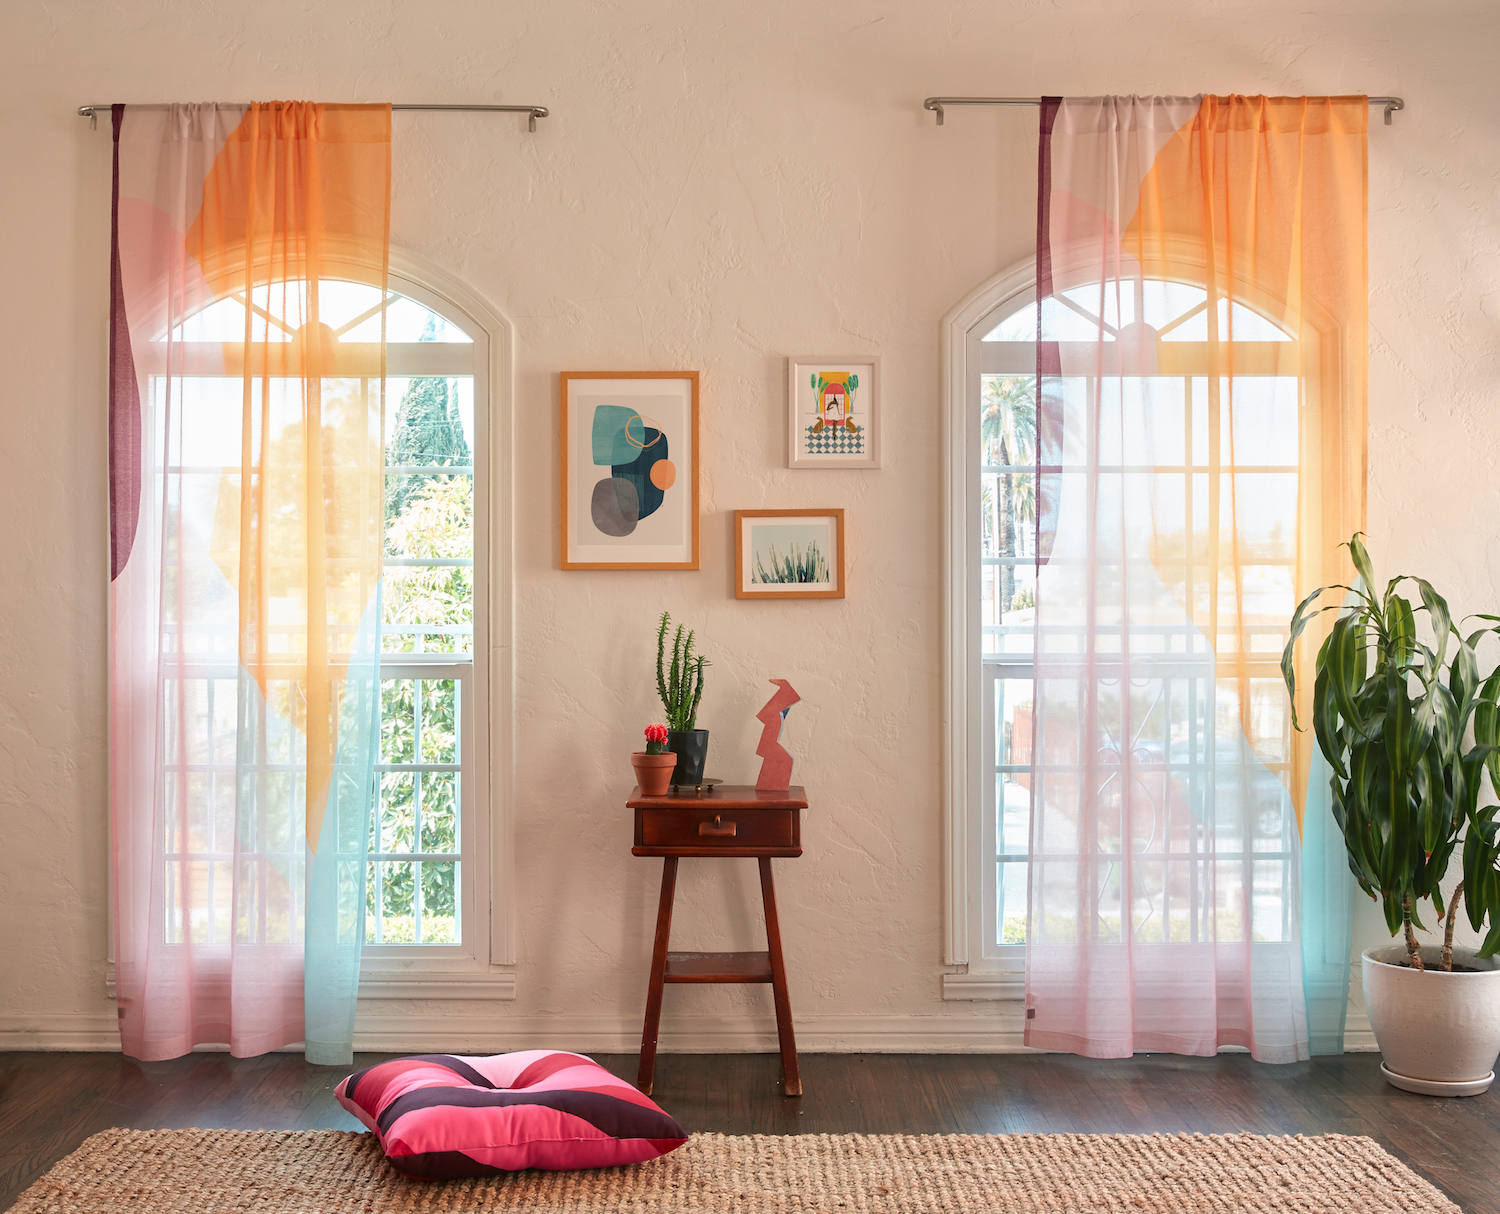 ... new window curtain options are a simple way to take your room from dull and drab to bright and airy. Read on for all the details, then get to hanging!